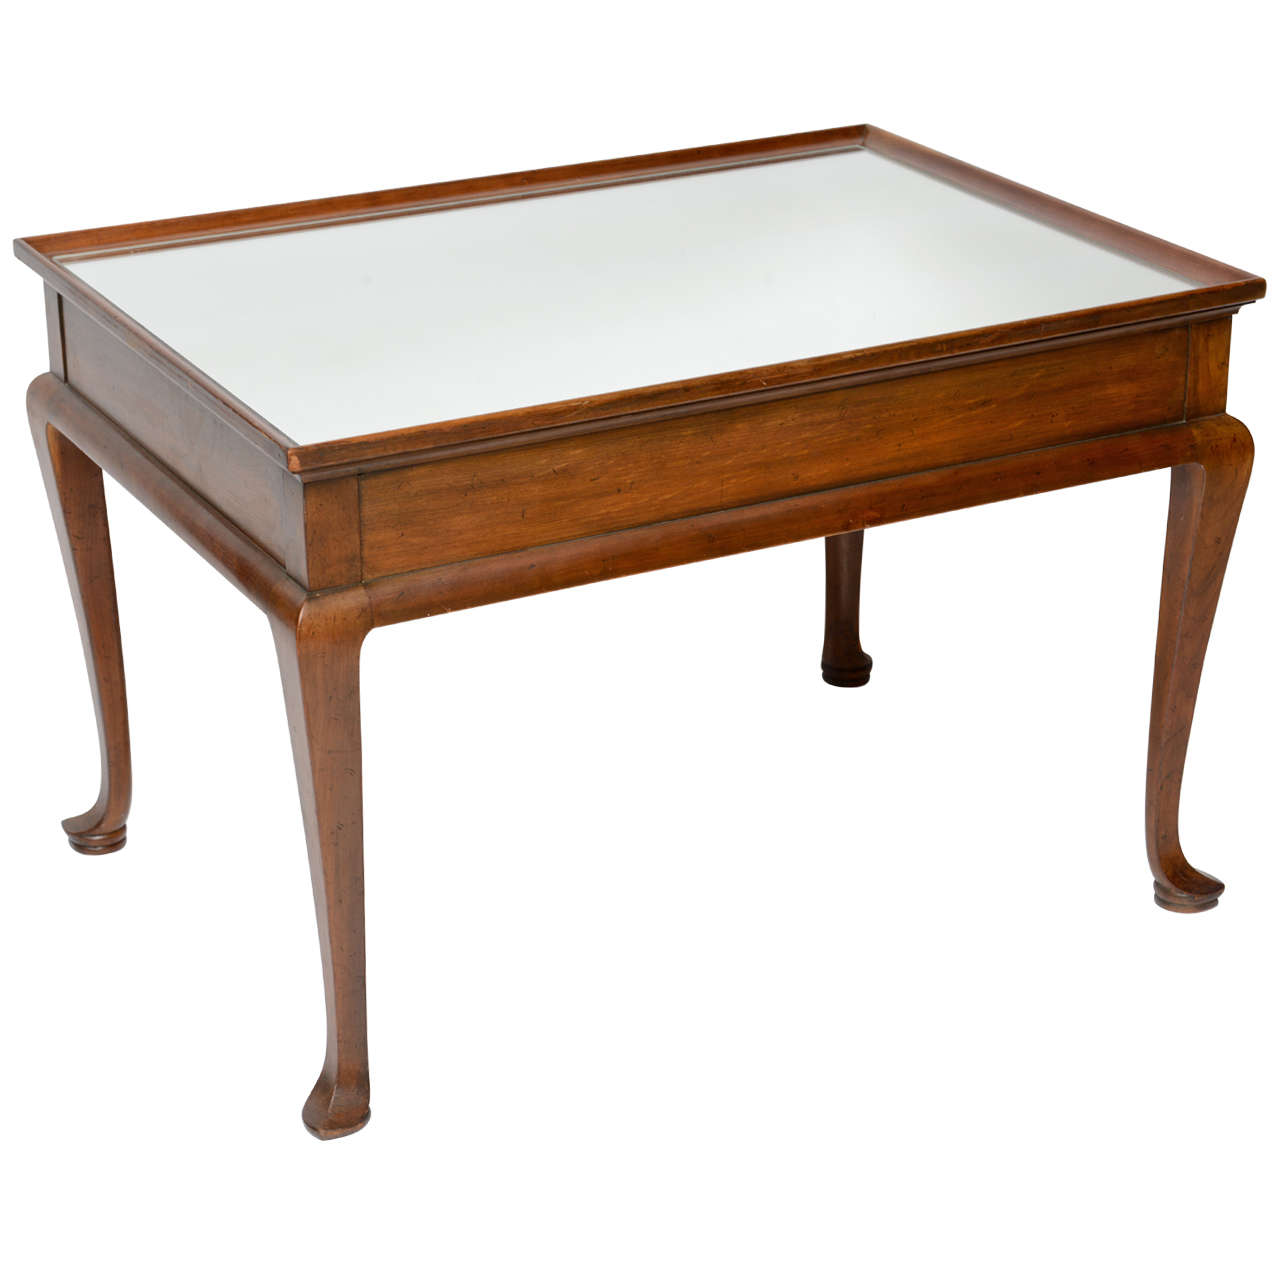 Merveilleux Queen Anne Style Coffee Table By Baker For Sale